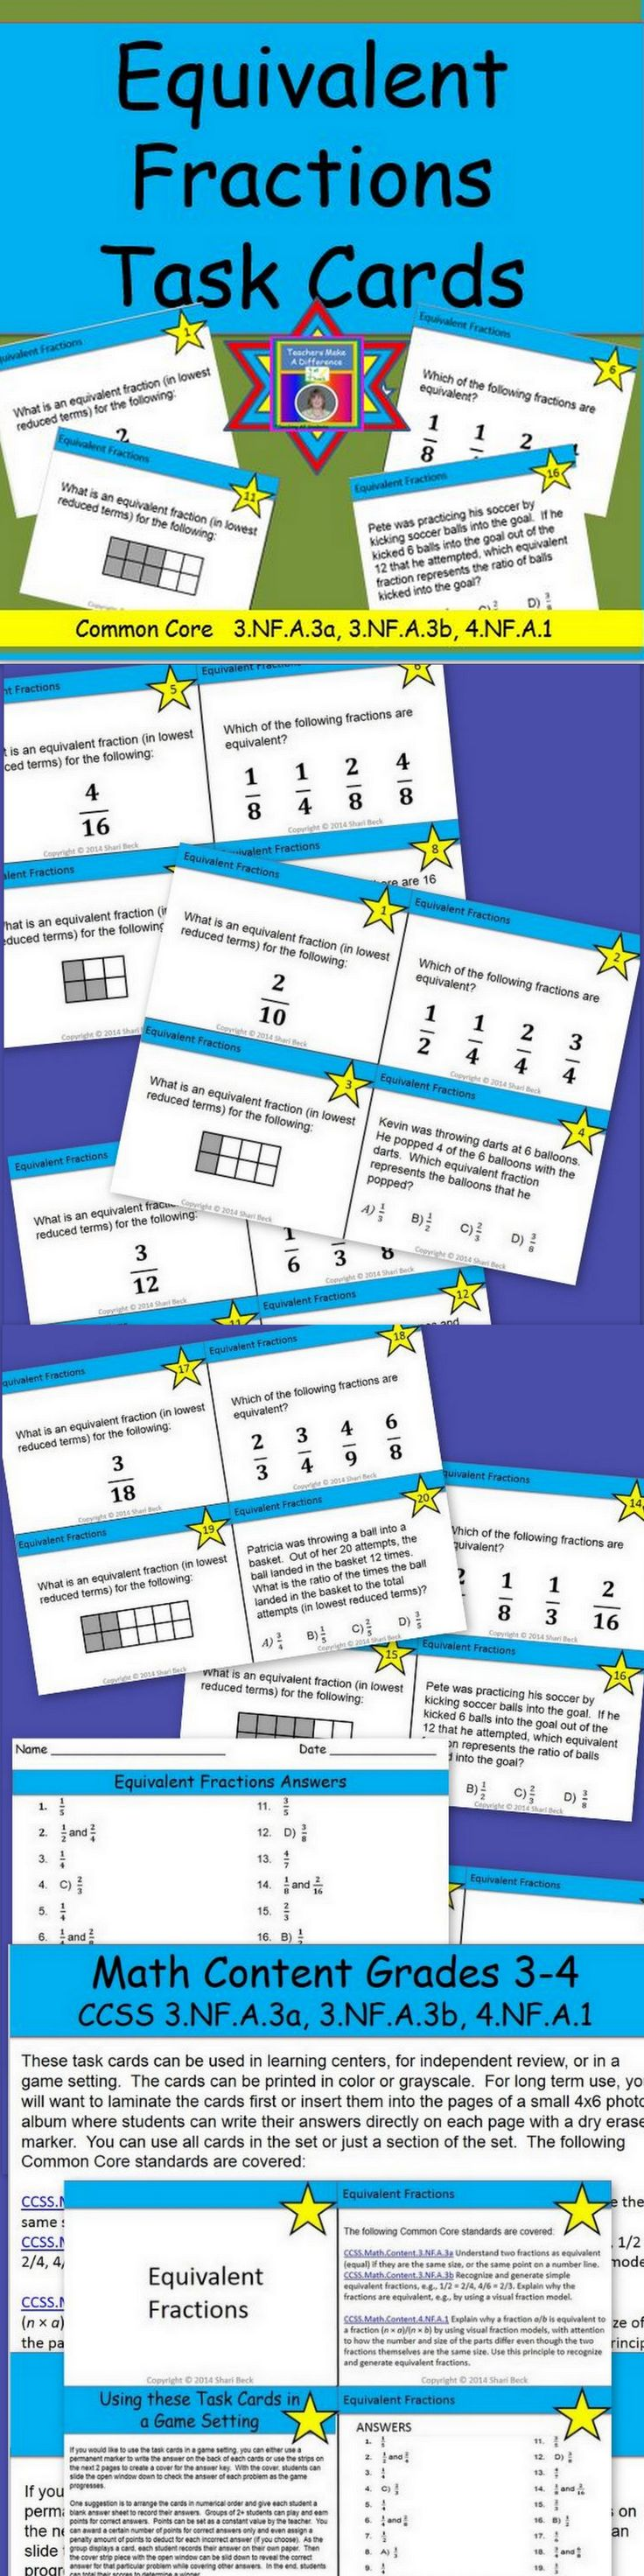 701 best Math images on Pinterest | Teaching math, Learning and ...